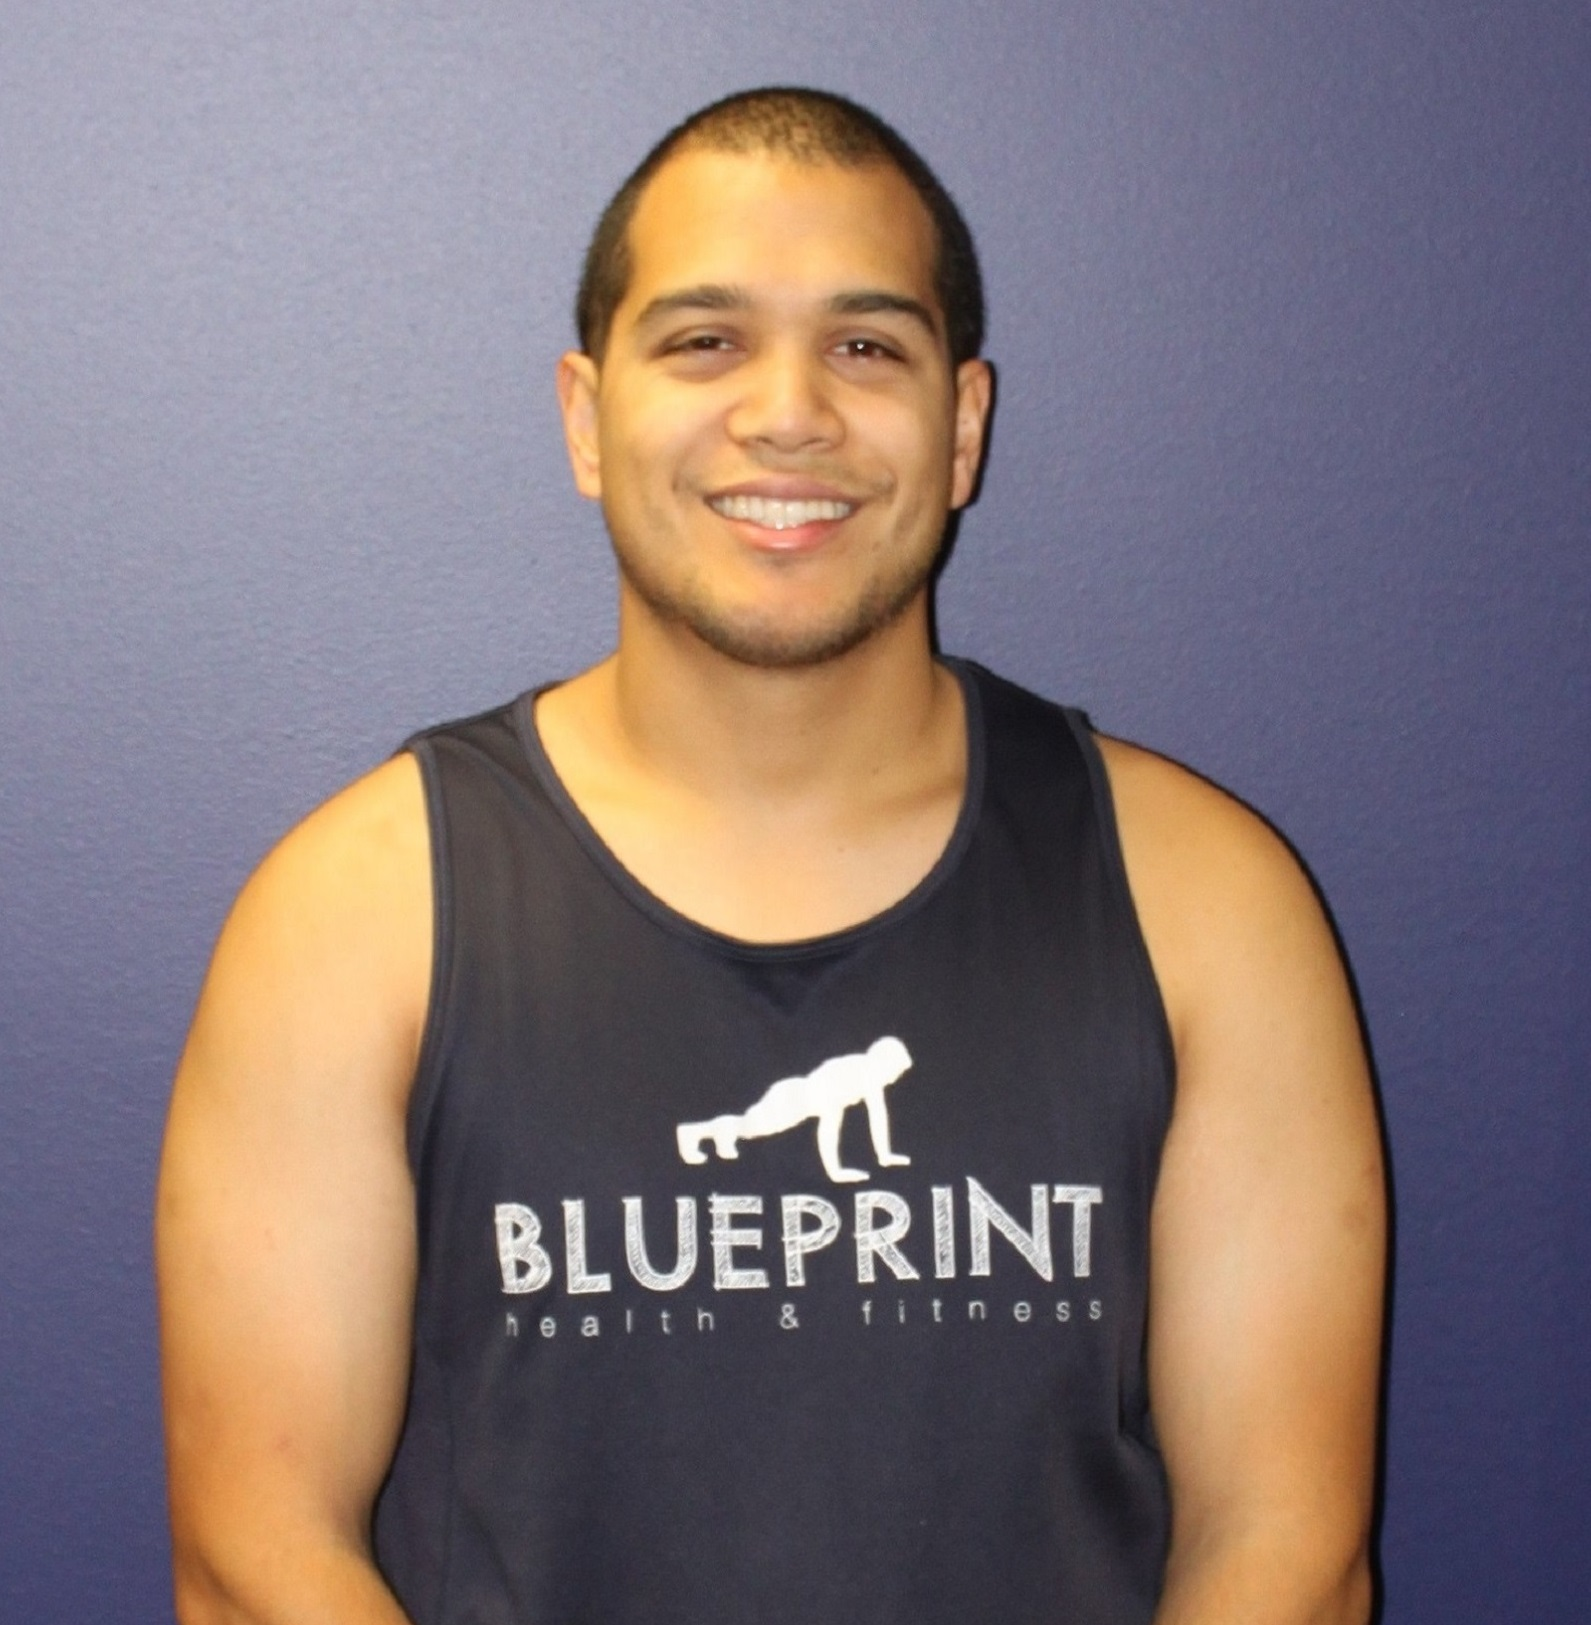 Blueprint health and fitness personal training boot camps mitch blueprint is the only fitness malvernweather Choice Image